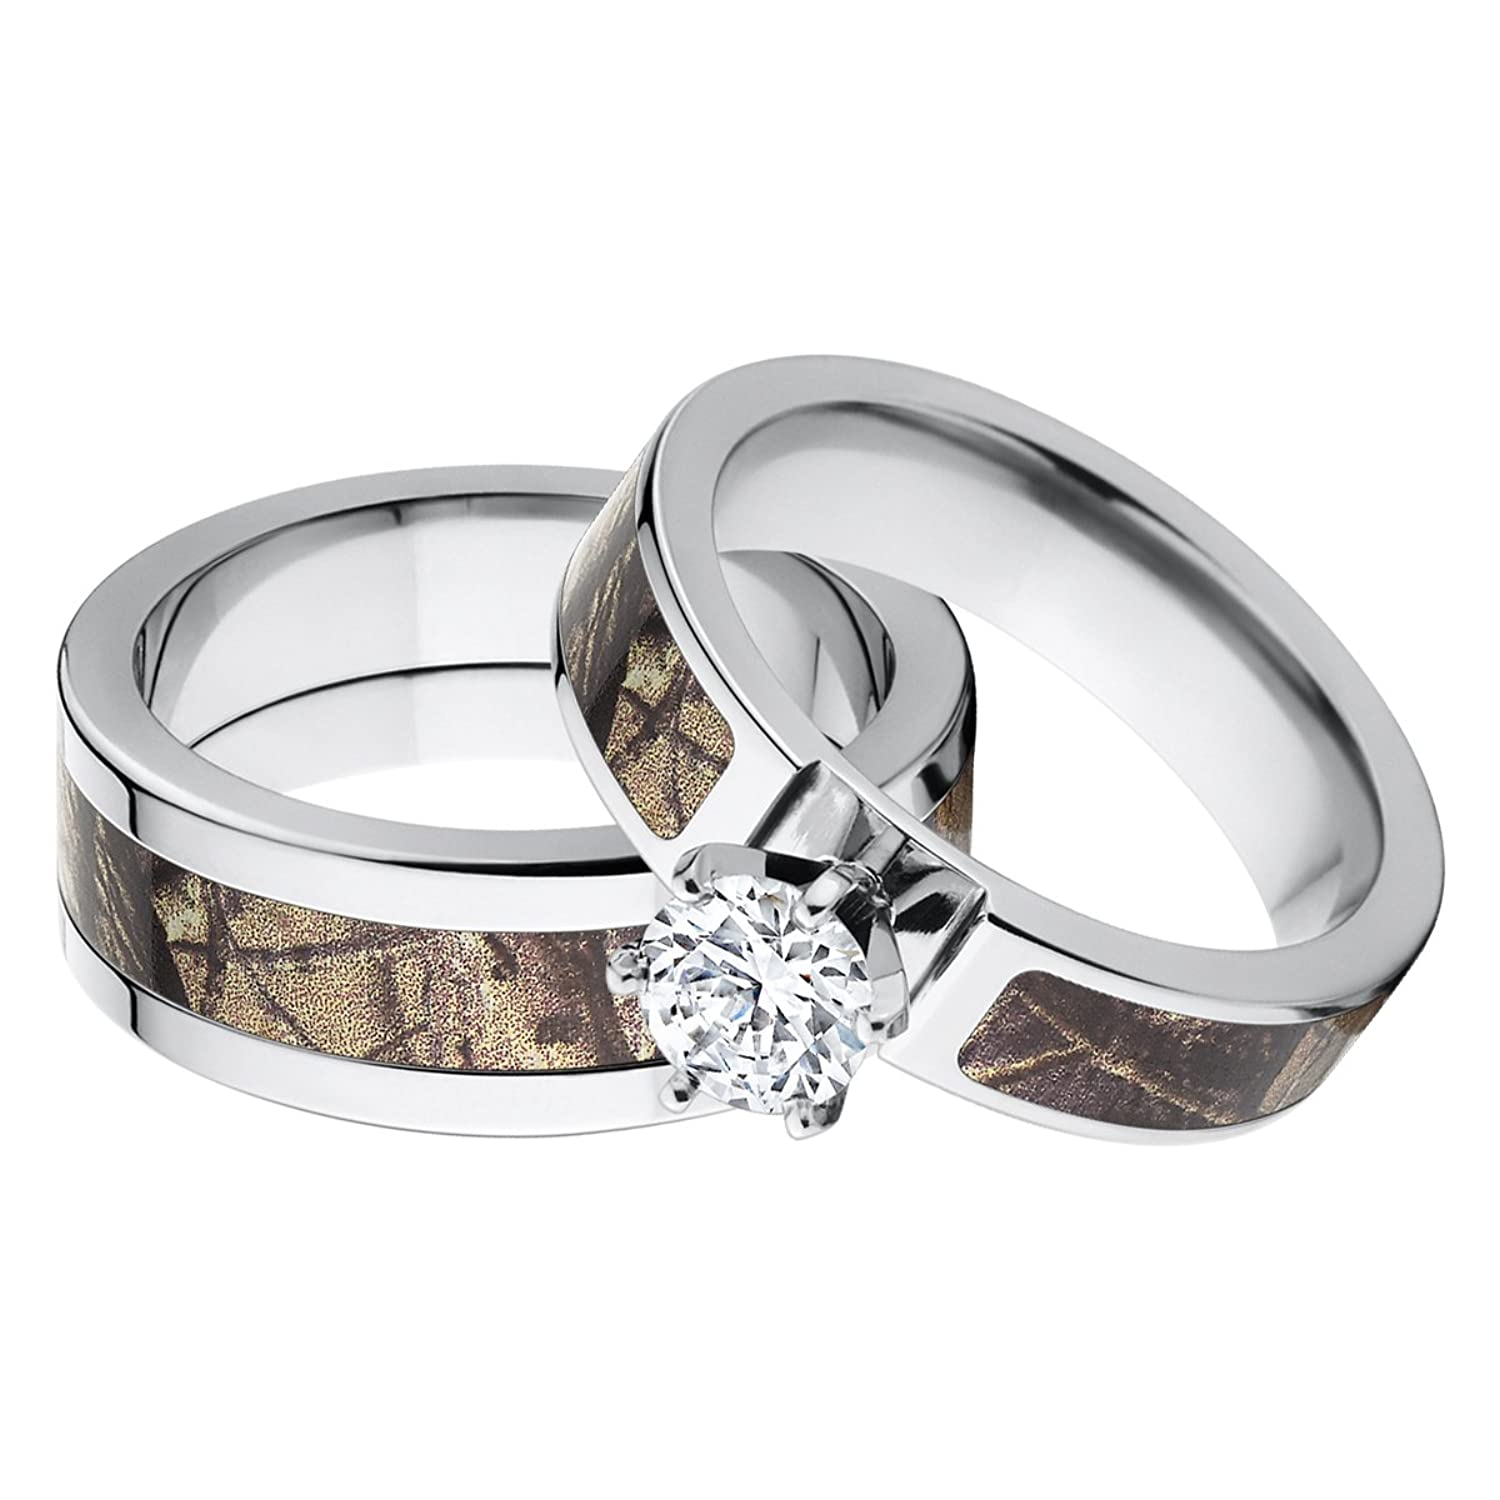 amazoncom his and hers matching realtree ap camouflage wedding ring set jewelry - Pink Camo Wedding Rings For Her